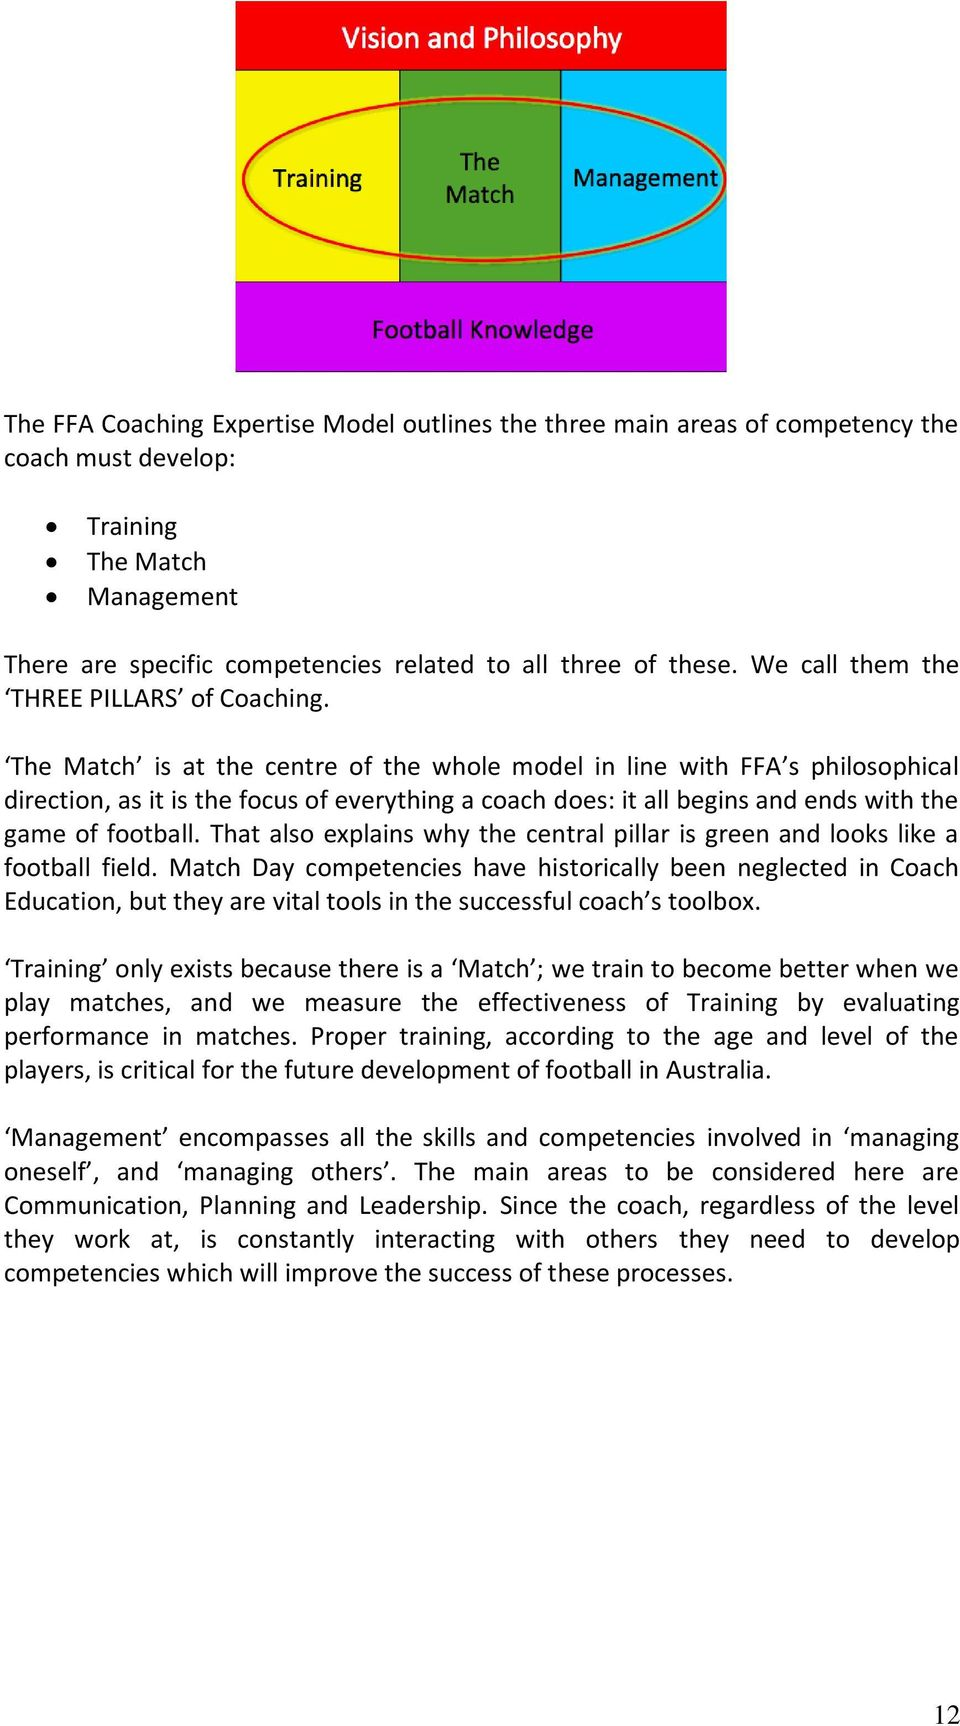 The Football Coaching Process - PDF